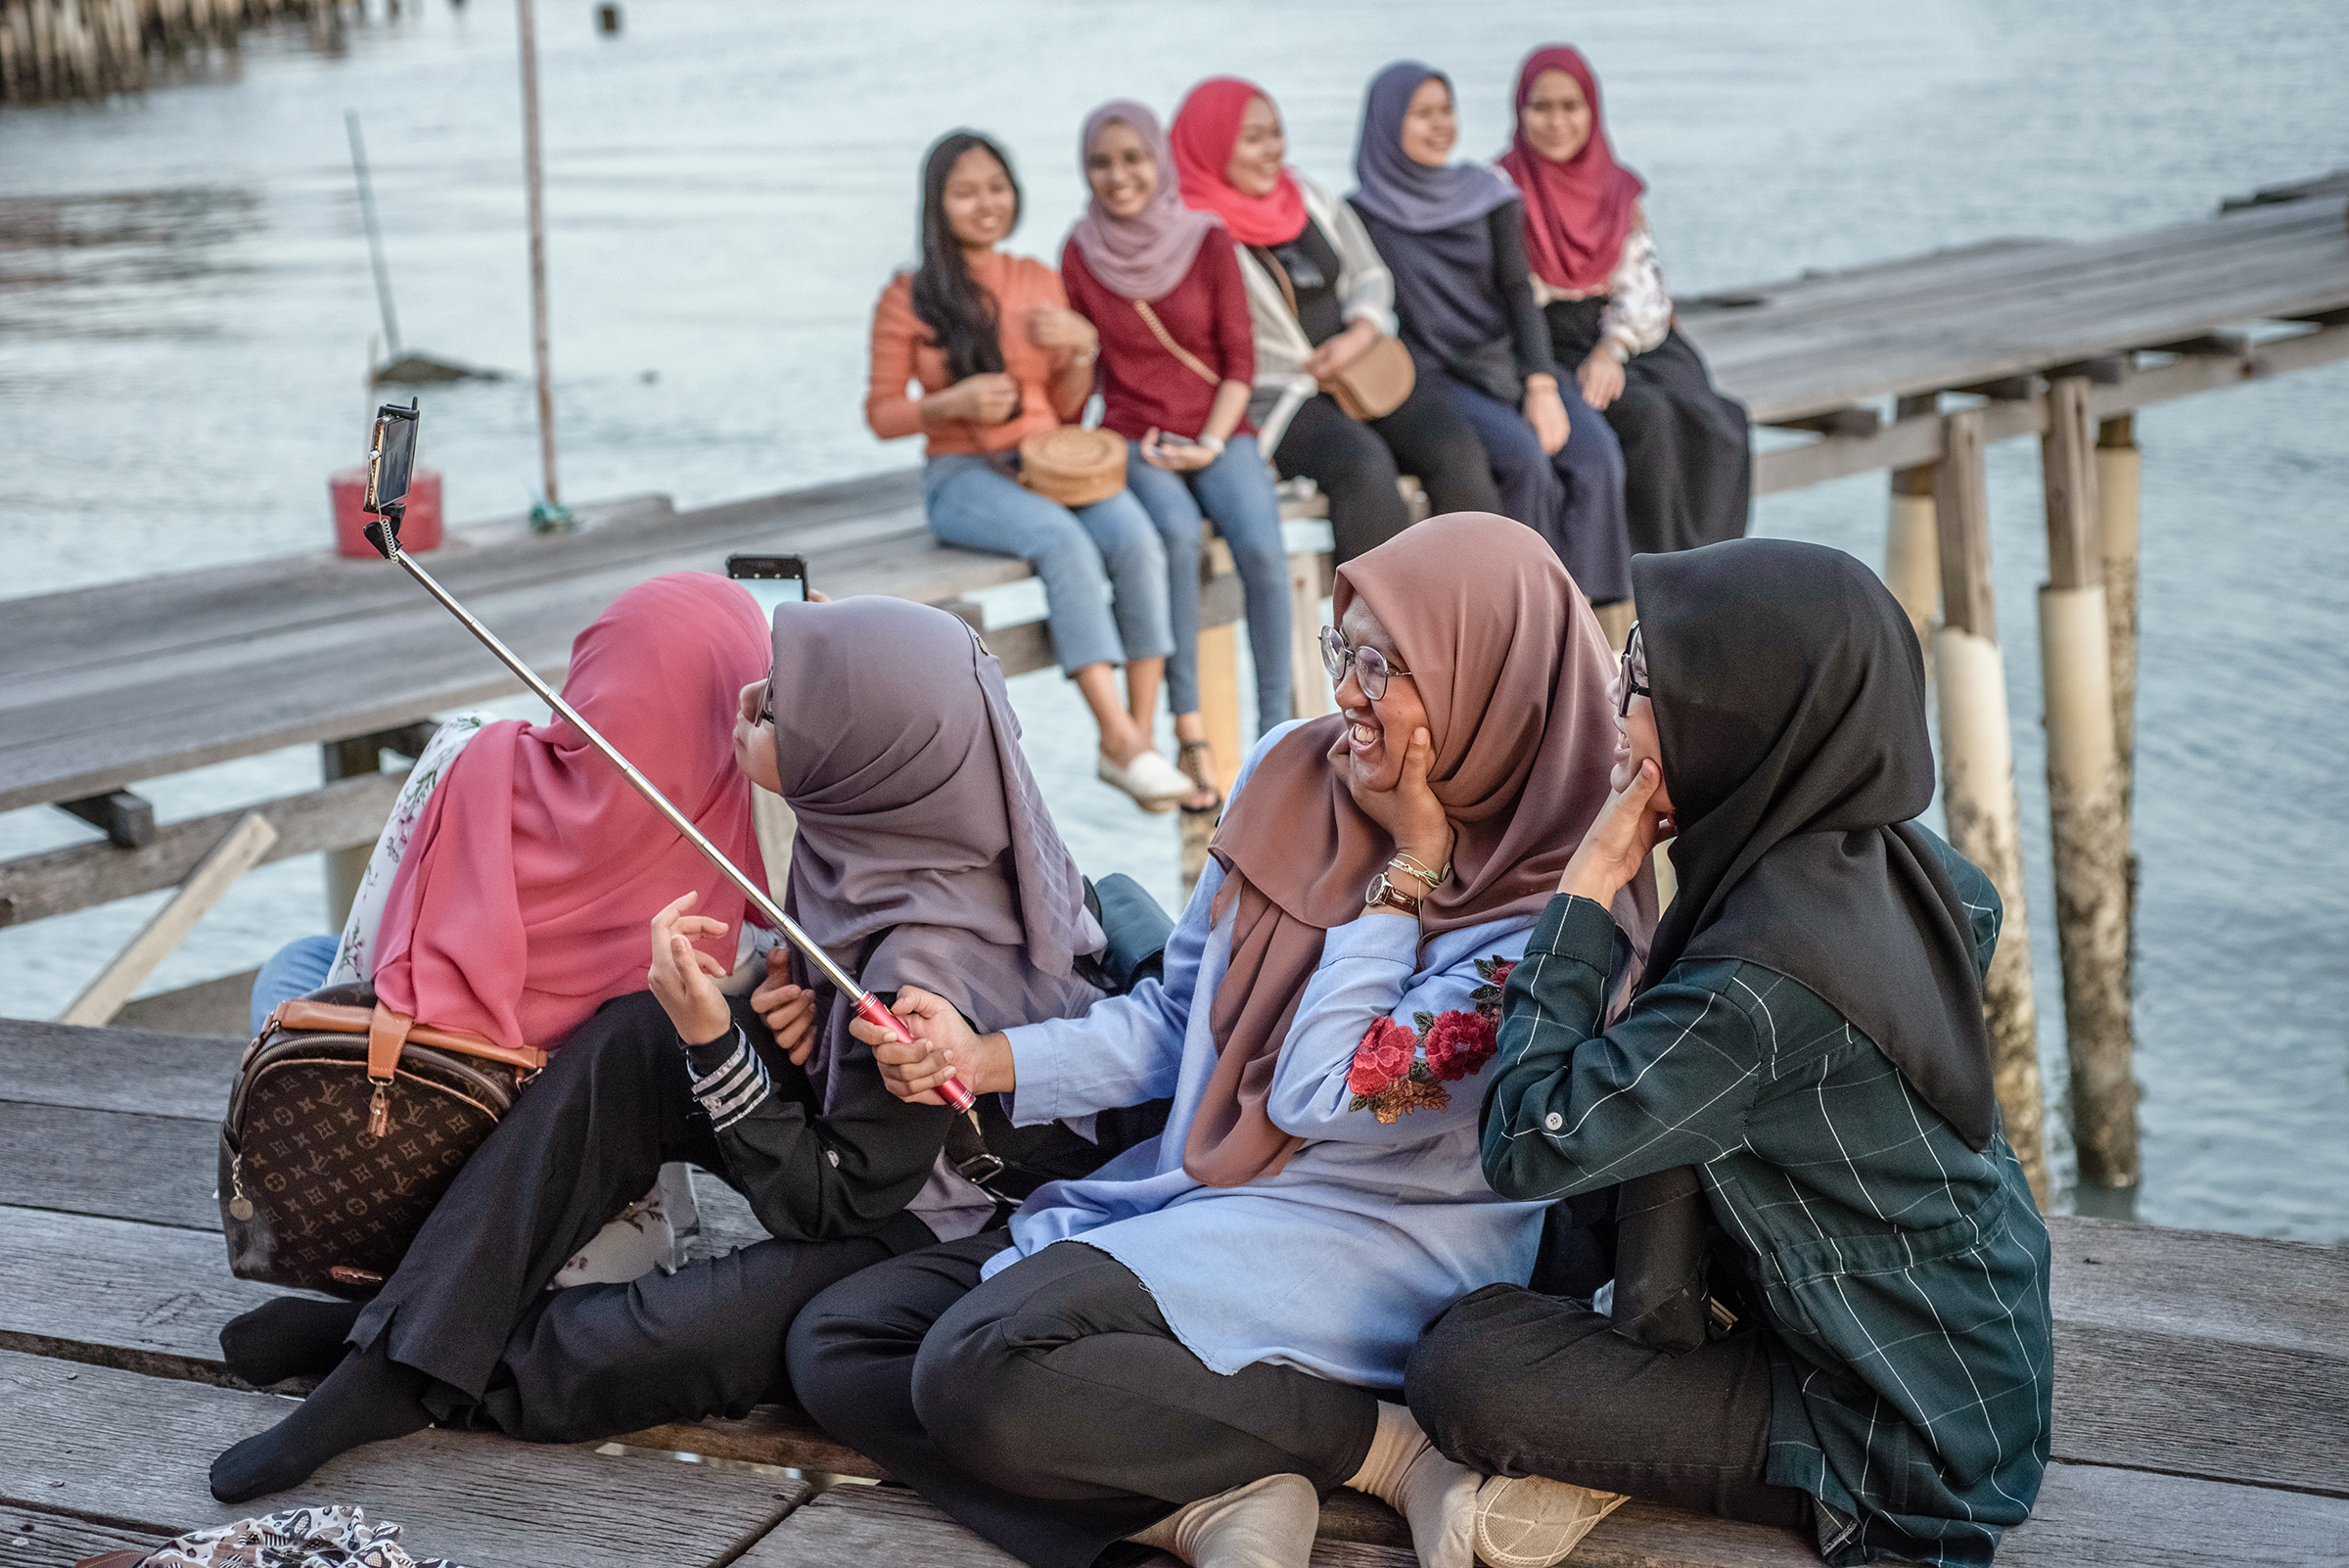 Muslim women enjoy the sunset in one of the Clan Jetties villages, in George Town, Penang Island, Malaysia, in January 2019.